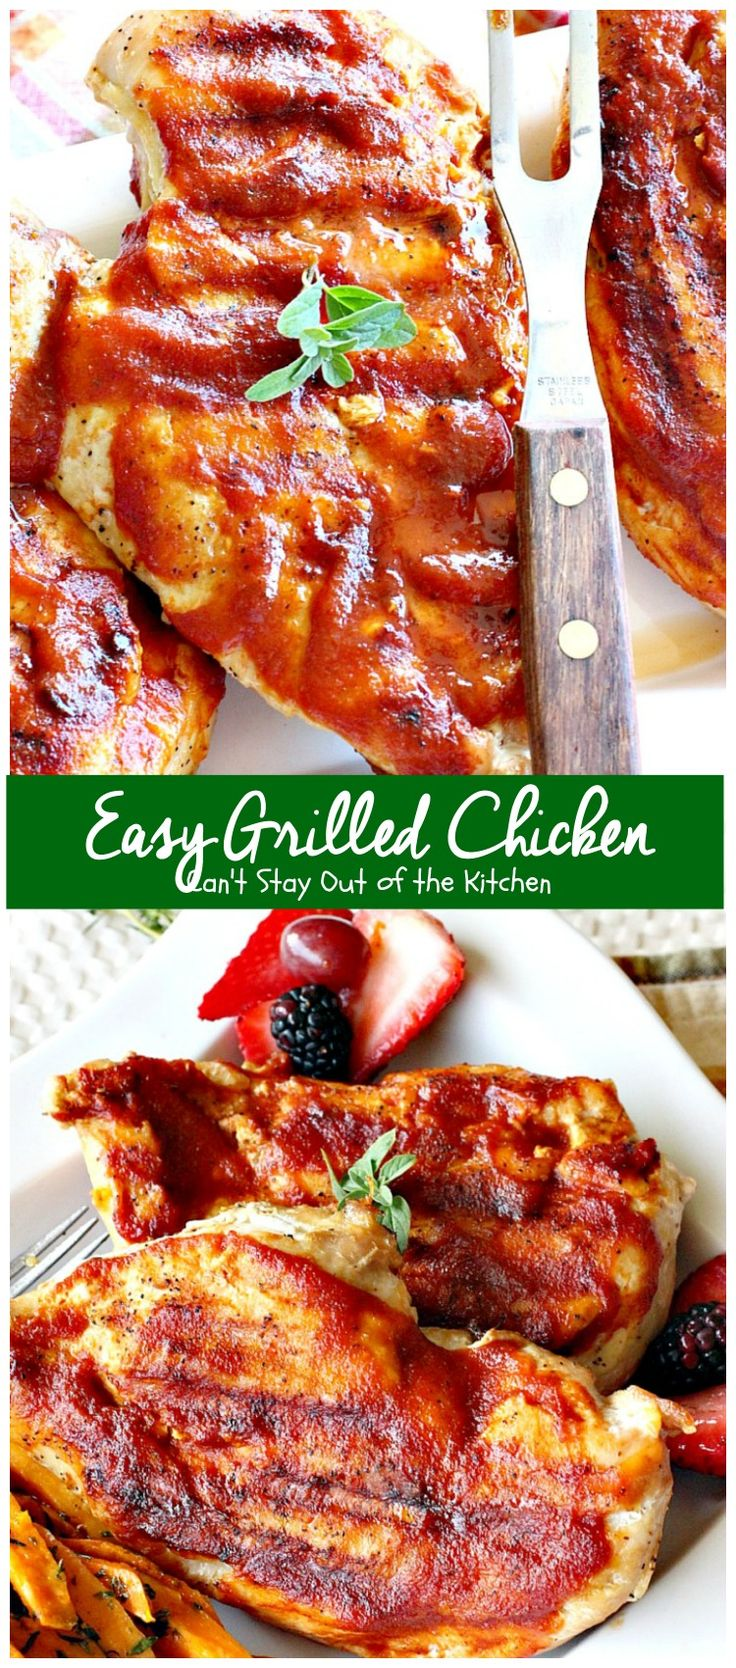 Easy Grilled Chicken | Can't Stay Out of the Kitchen | Easy & delicious 3-ingredient #chicken entree with a homemade #BBQ sauce. #glutenfree